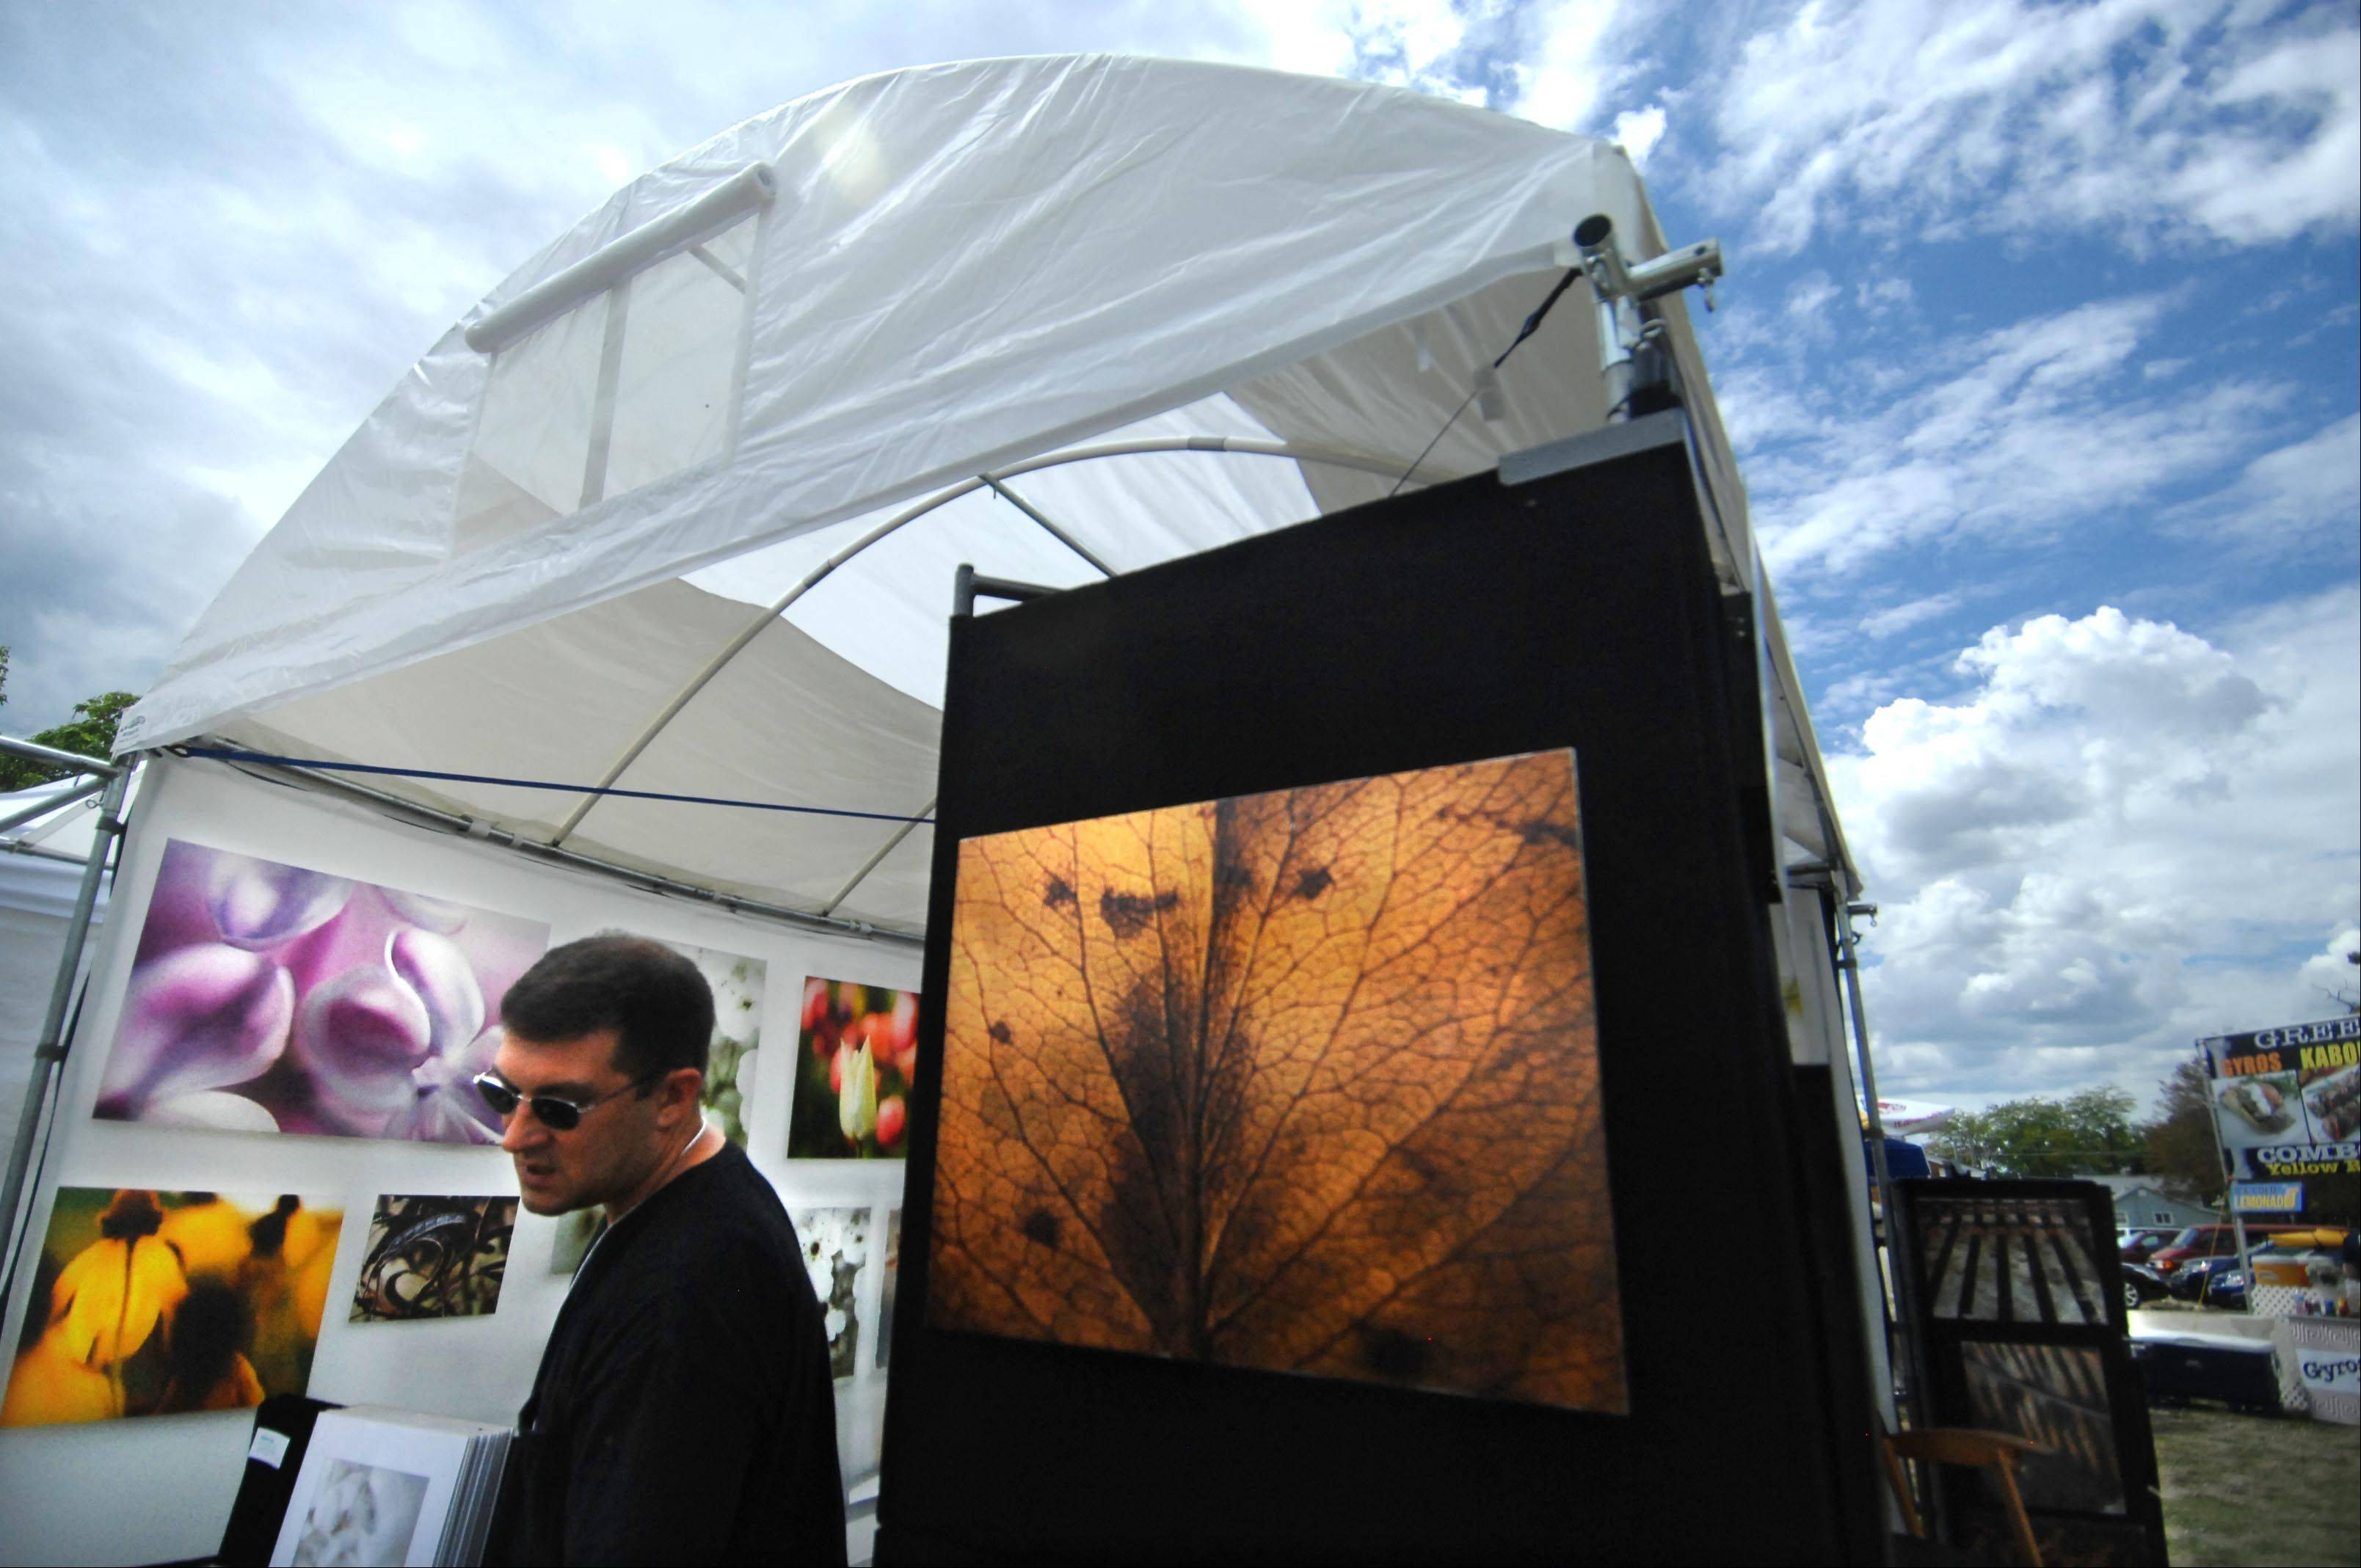 Fine art photographer John Granata, of Lily Lake, shows browsers his work Sunday during the Huntley Artfest. He won Best of Show for his booth.